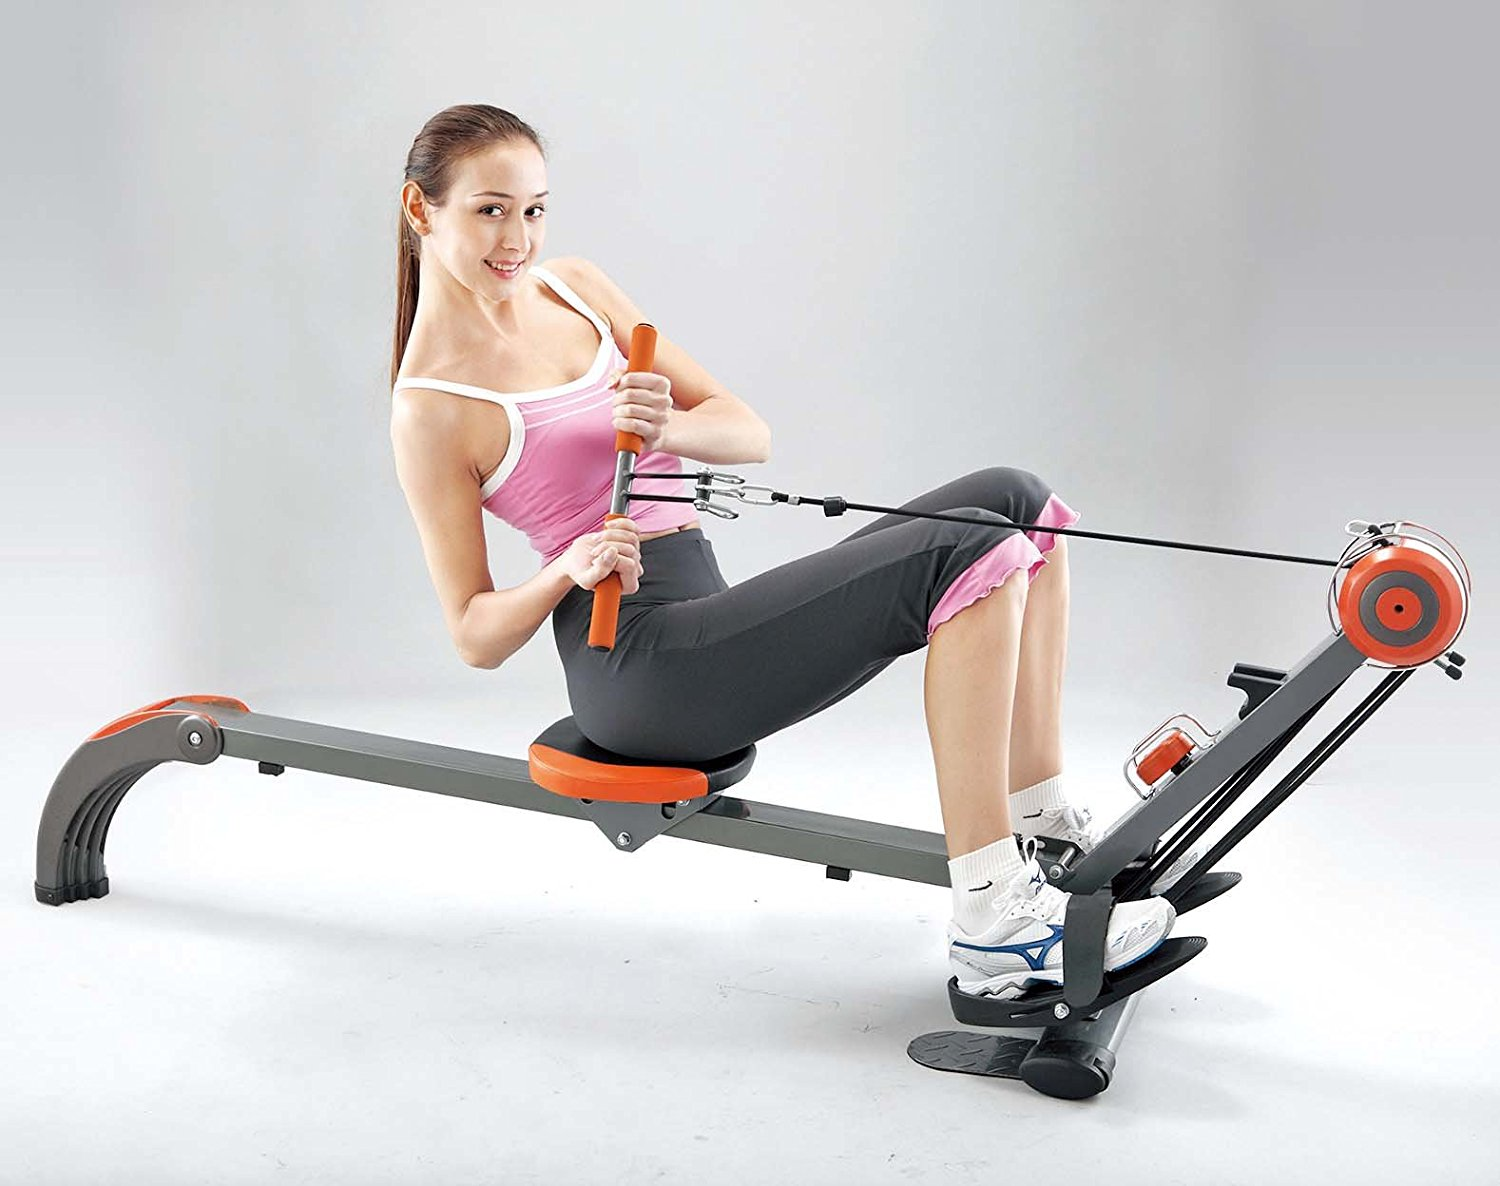 Rowing Machine woman in pink